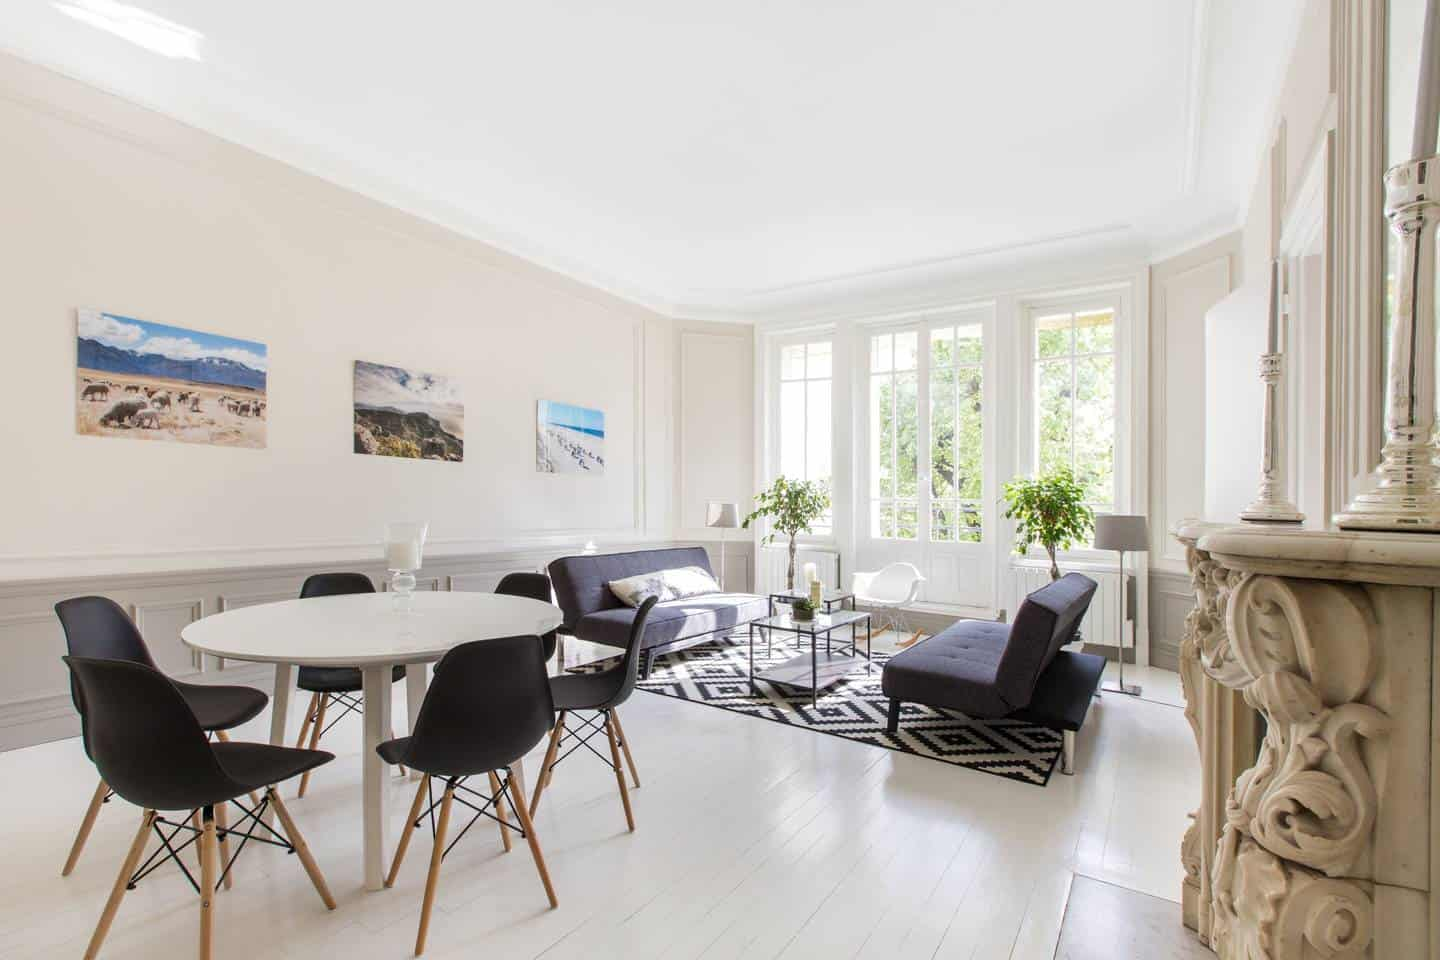 Wow! This Airbnb Paris listing near Eiffel Tower is dreamy. You have to see the pictures!